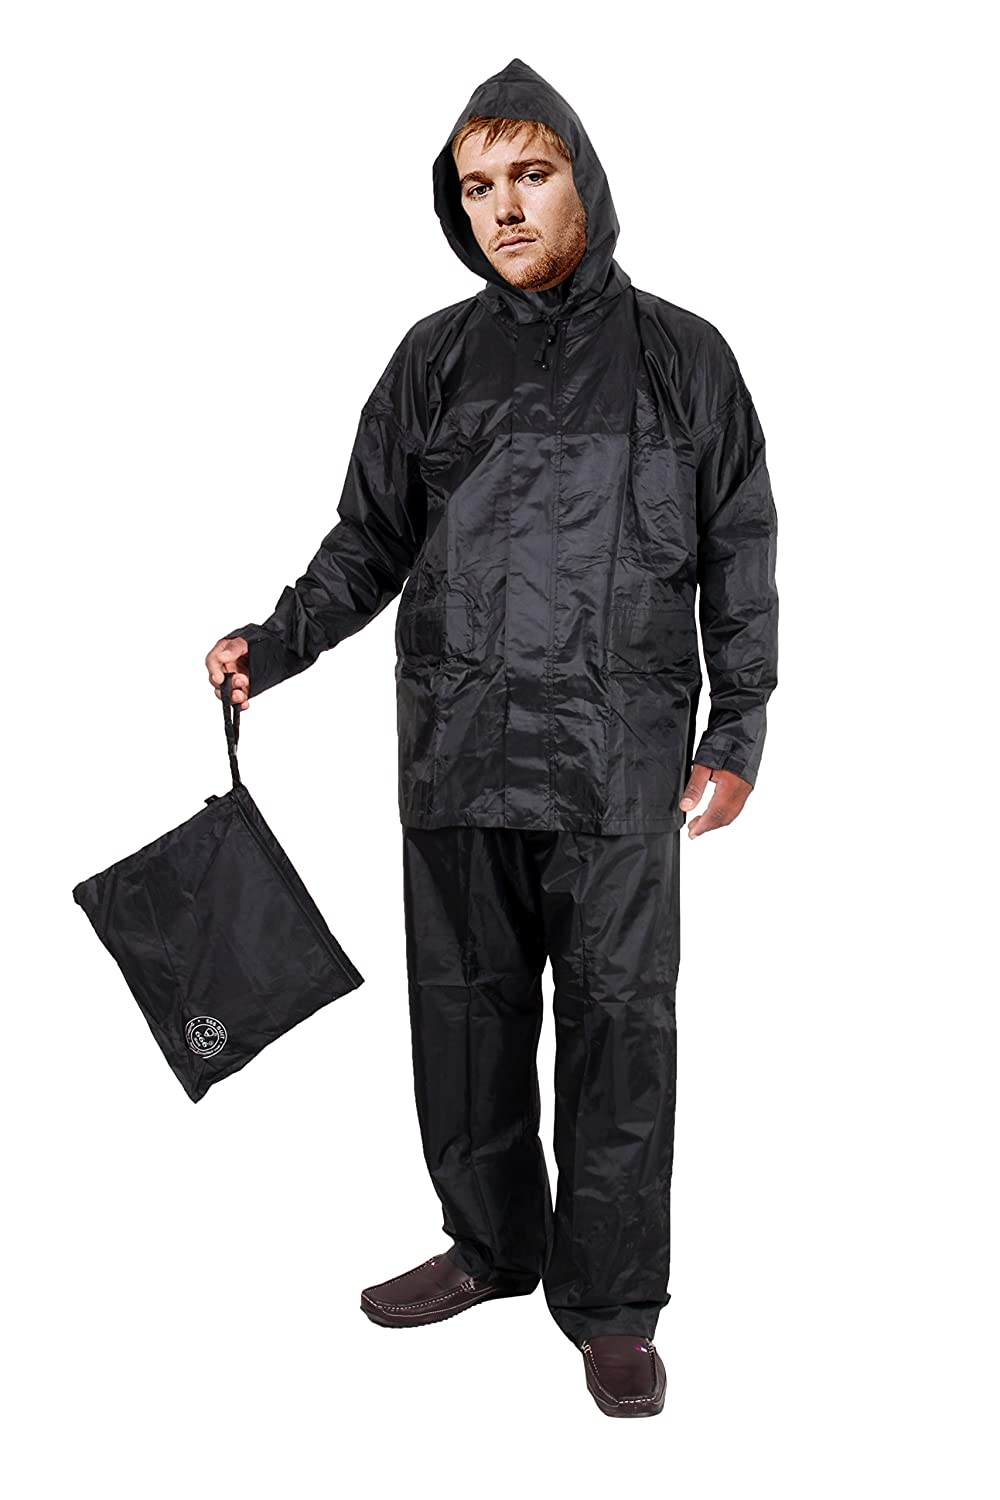 51376bb521 Raincoats  Buy Raincoat online at best prices in India - Amazon.in